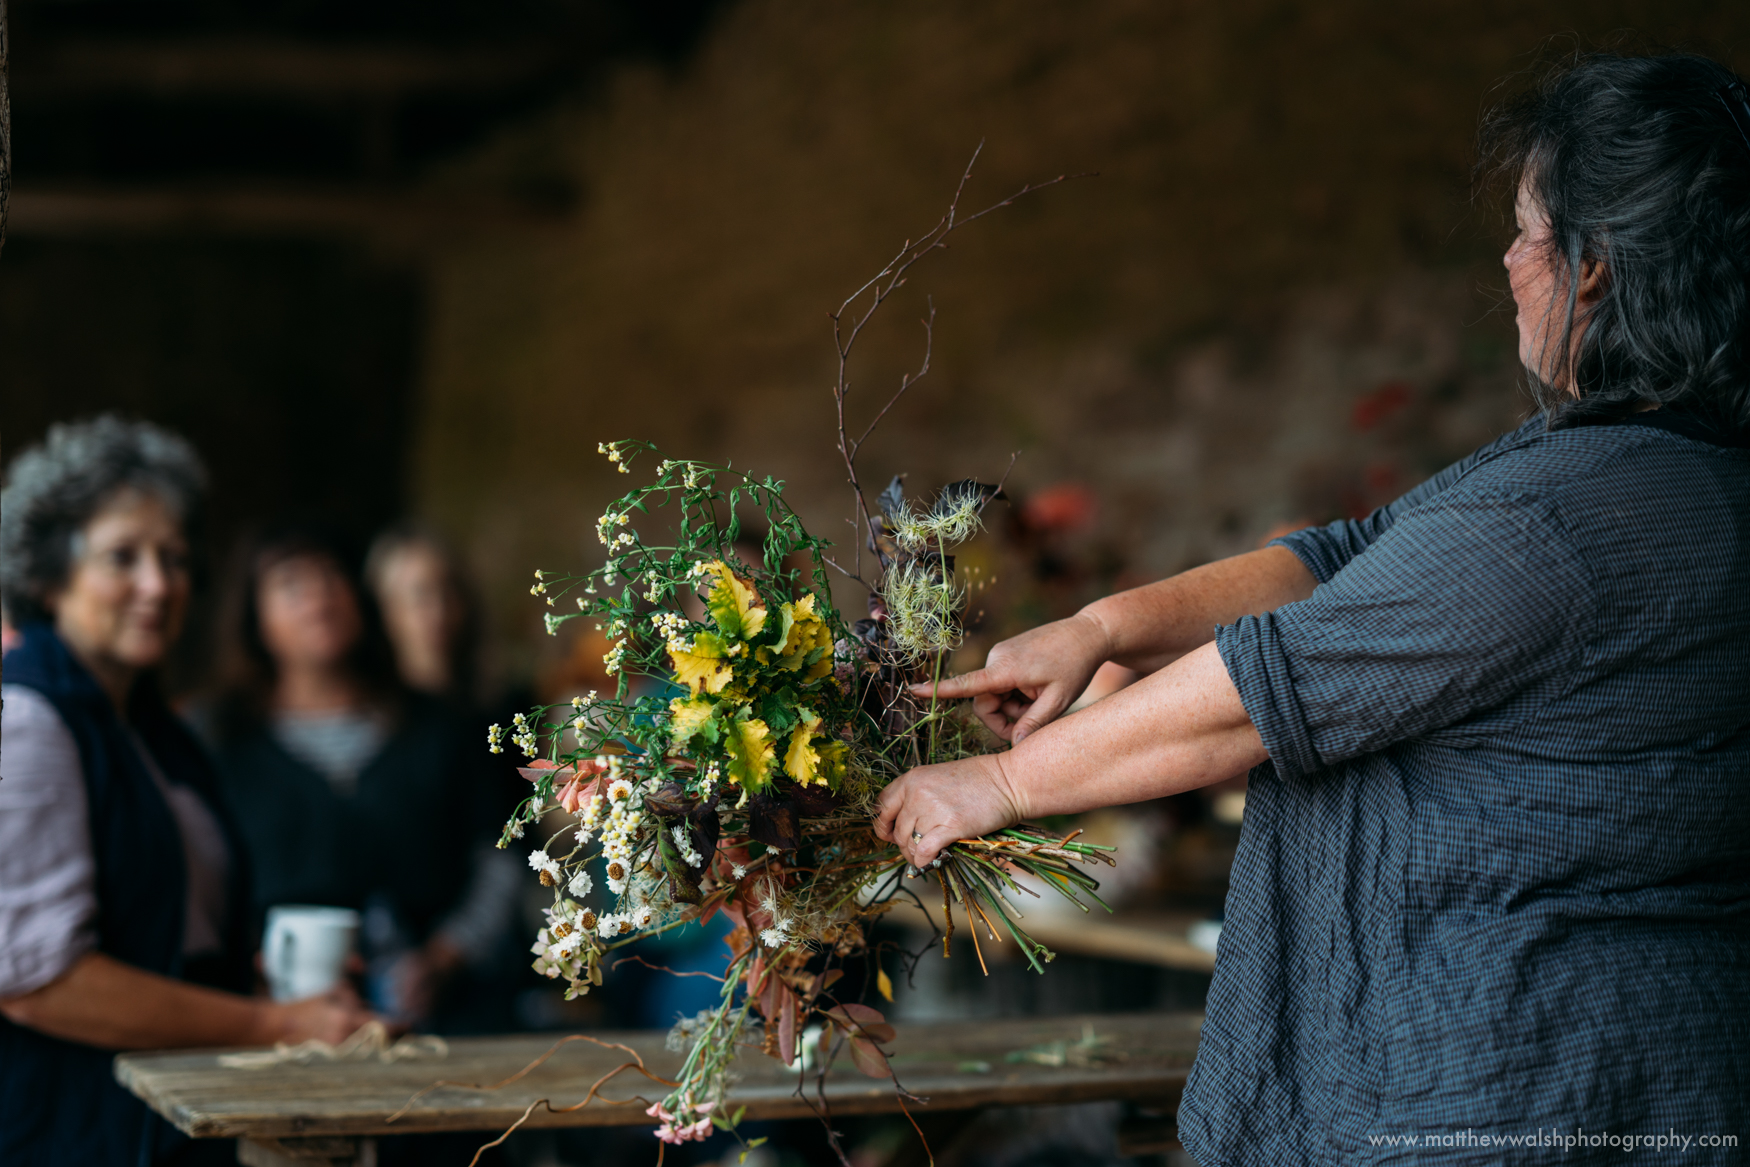 Melissa of the Twisted Sisters shows how to make a bouquet